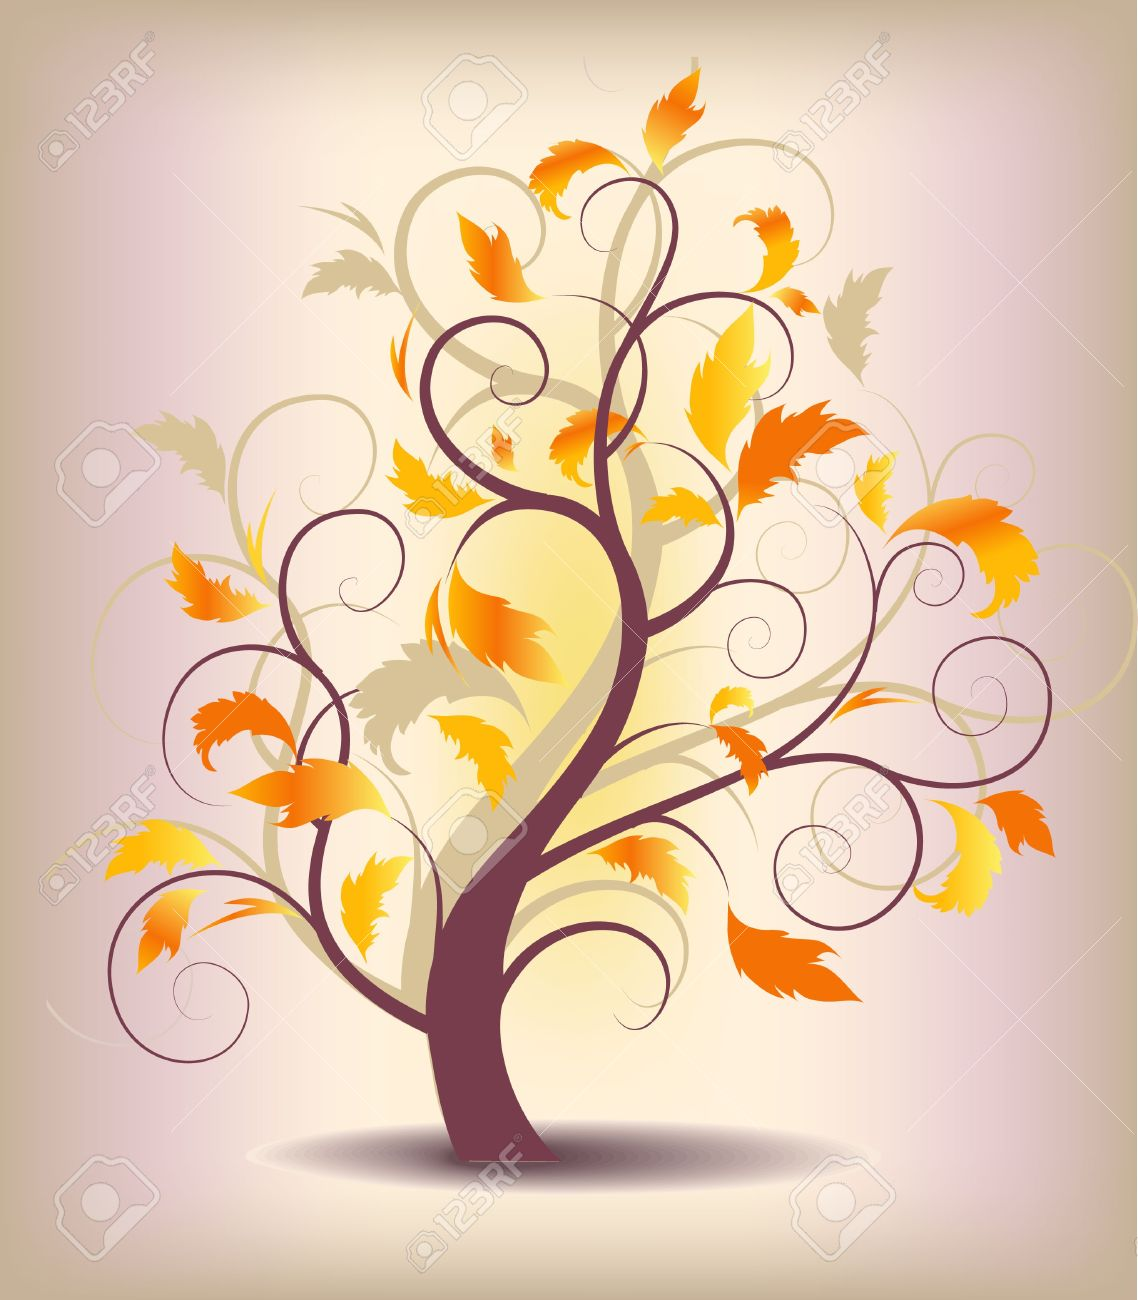 abstract background autumn tree with yellow leaves Stock Vector - 10294459